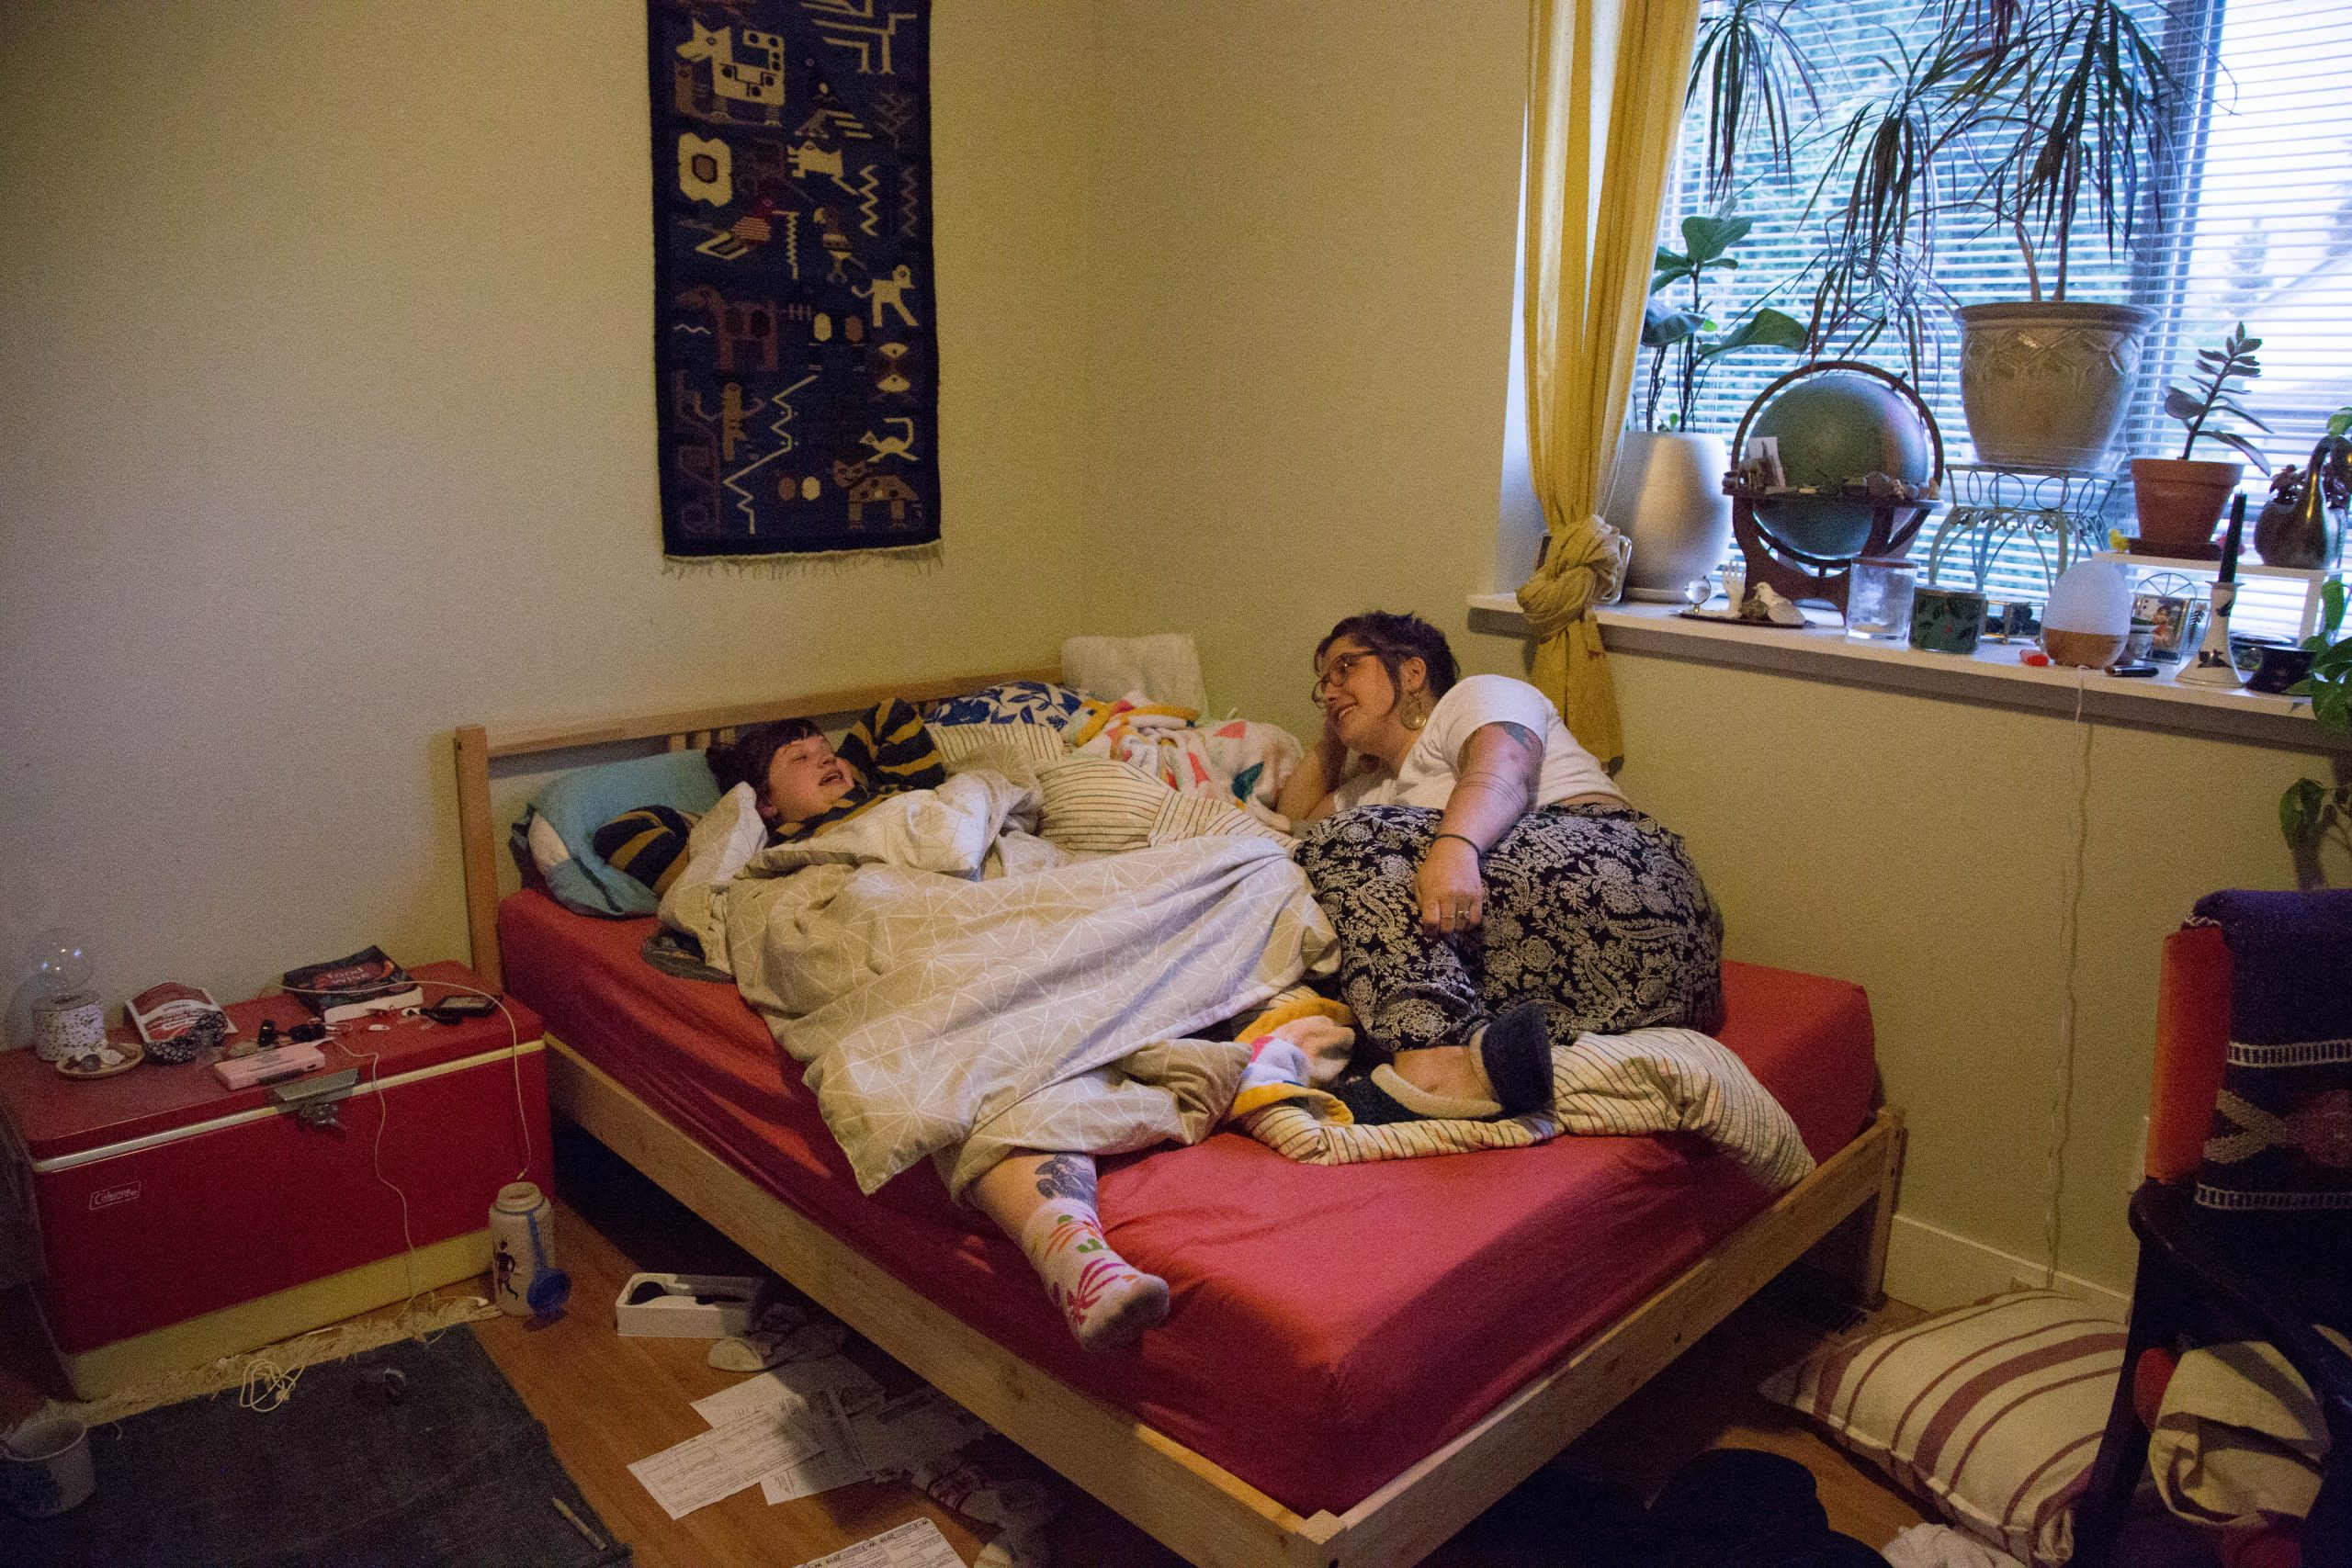 Two girls lie in a bed together, one under blankets the other on top.